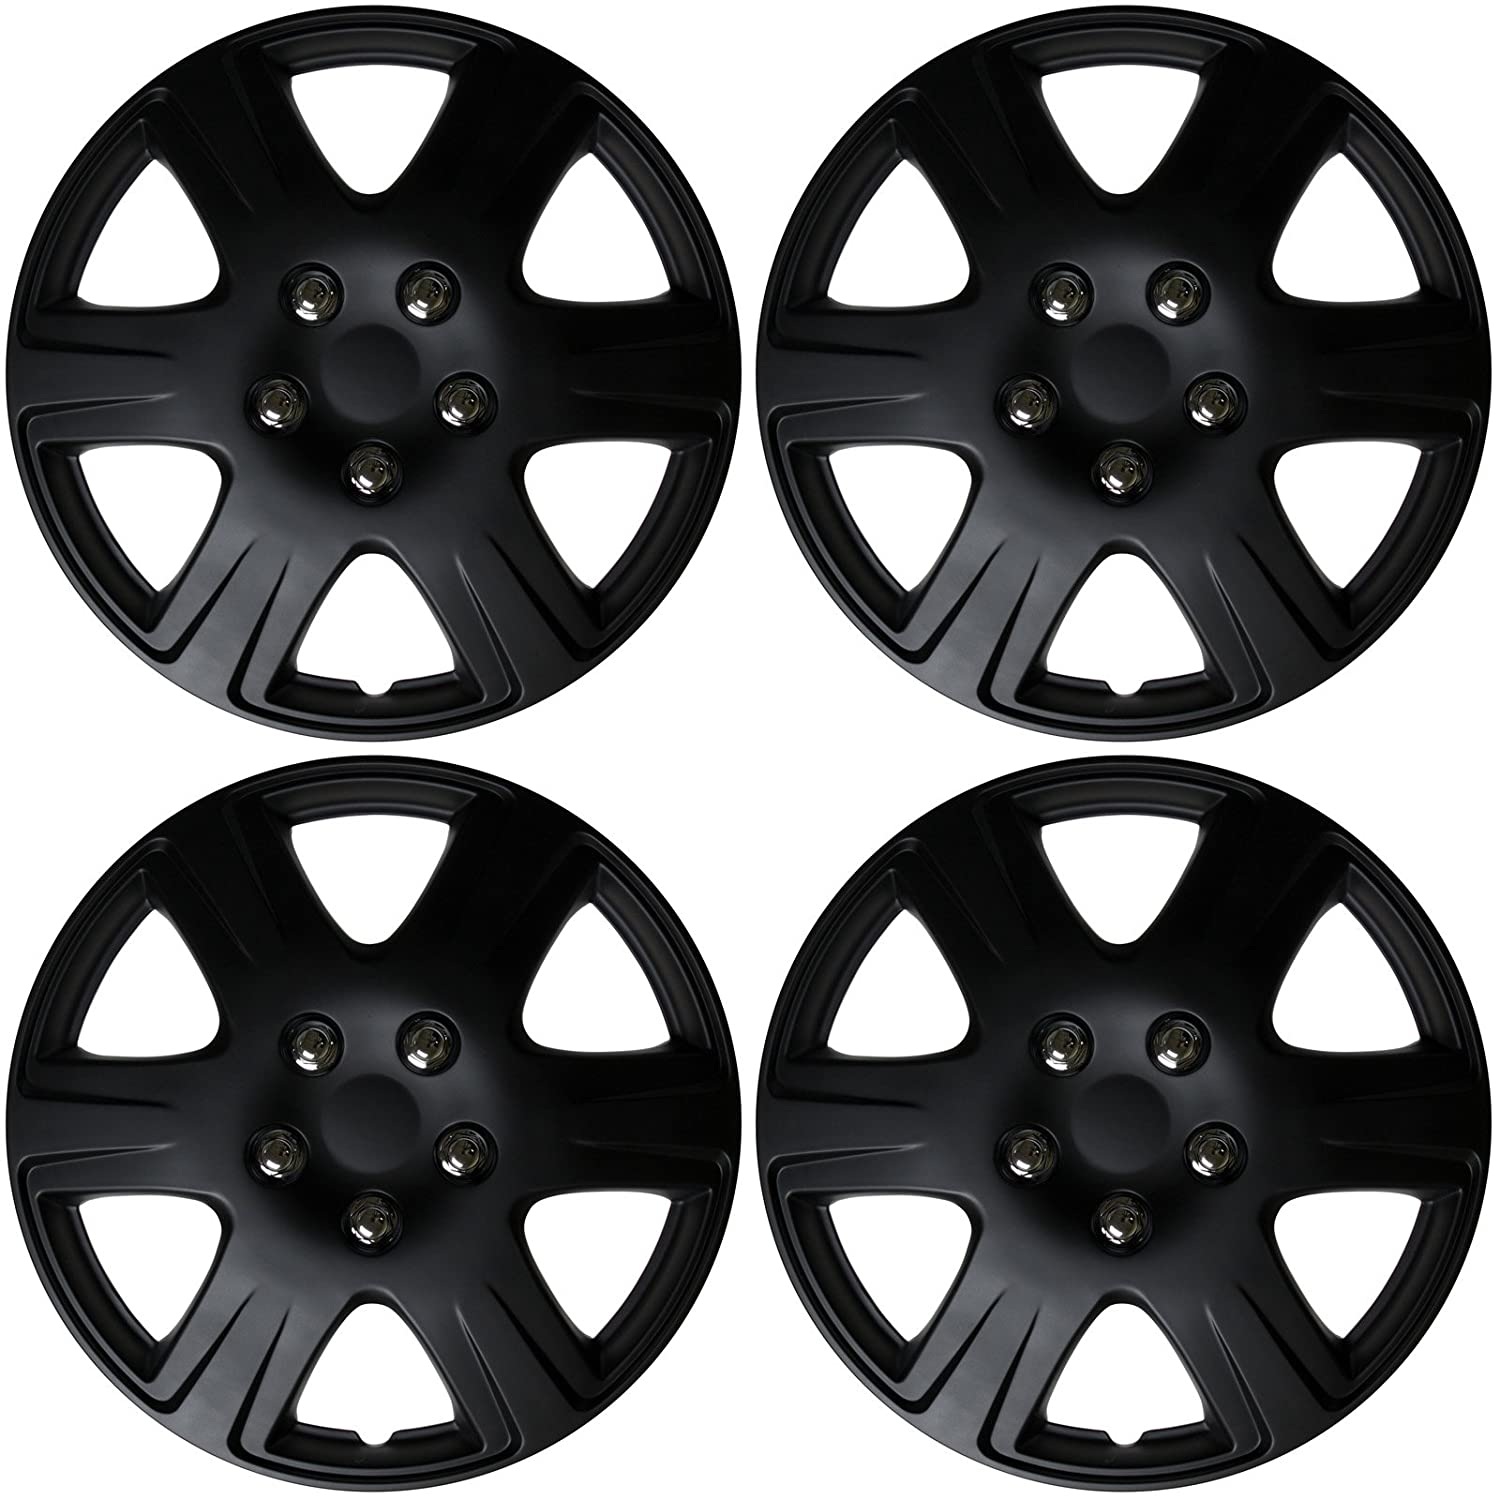 Cover Trend (Set of 4), Universal 15' Black Matte Hub Caps Wheel Covers Universal 15 Black Matte Hub Caps Wheel Covers